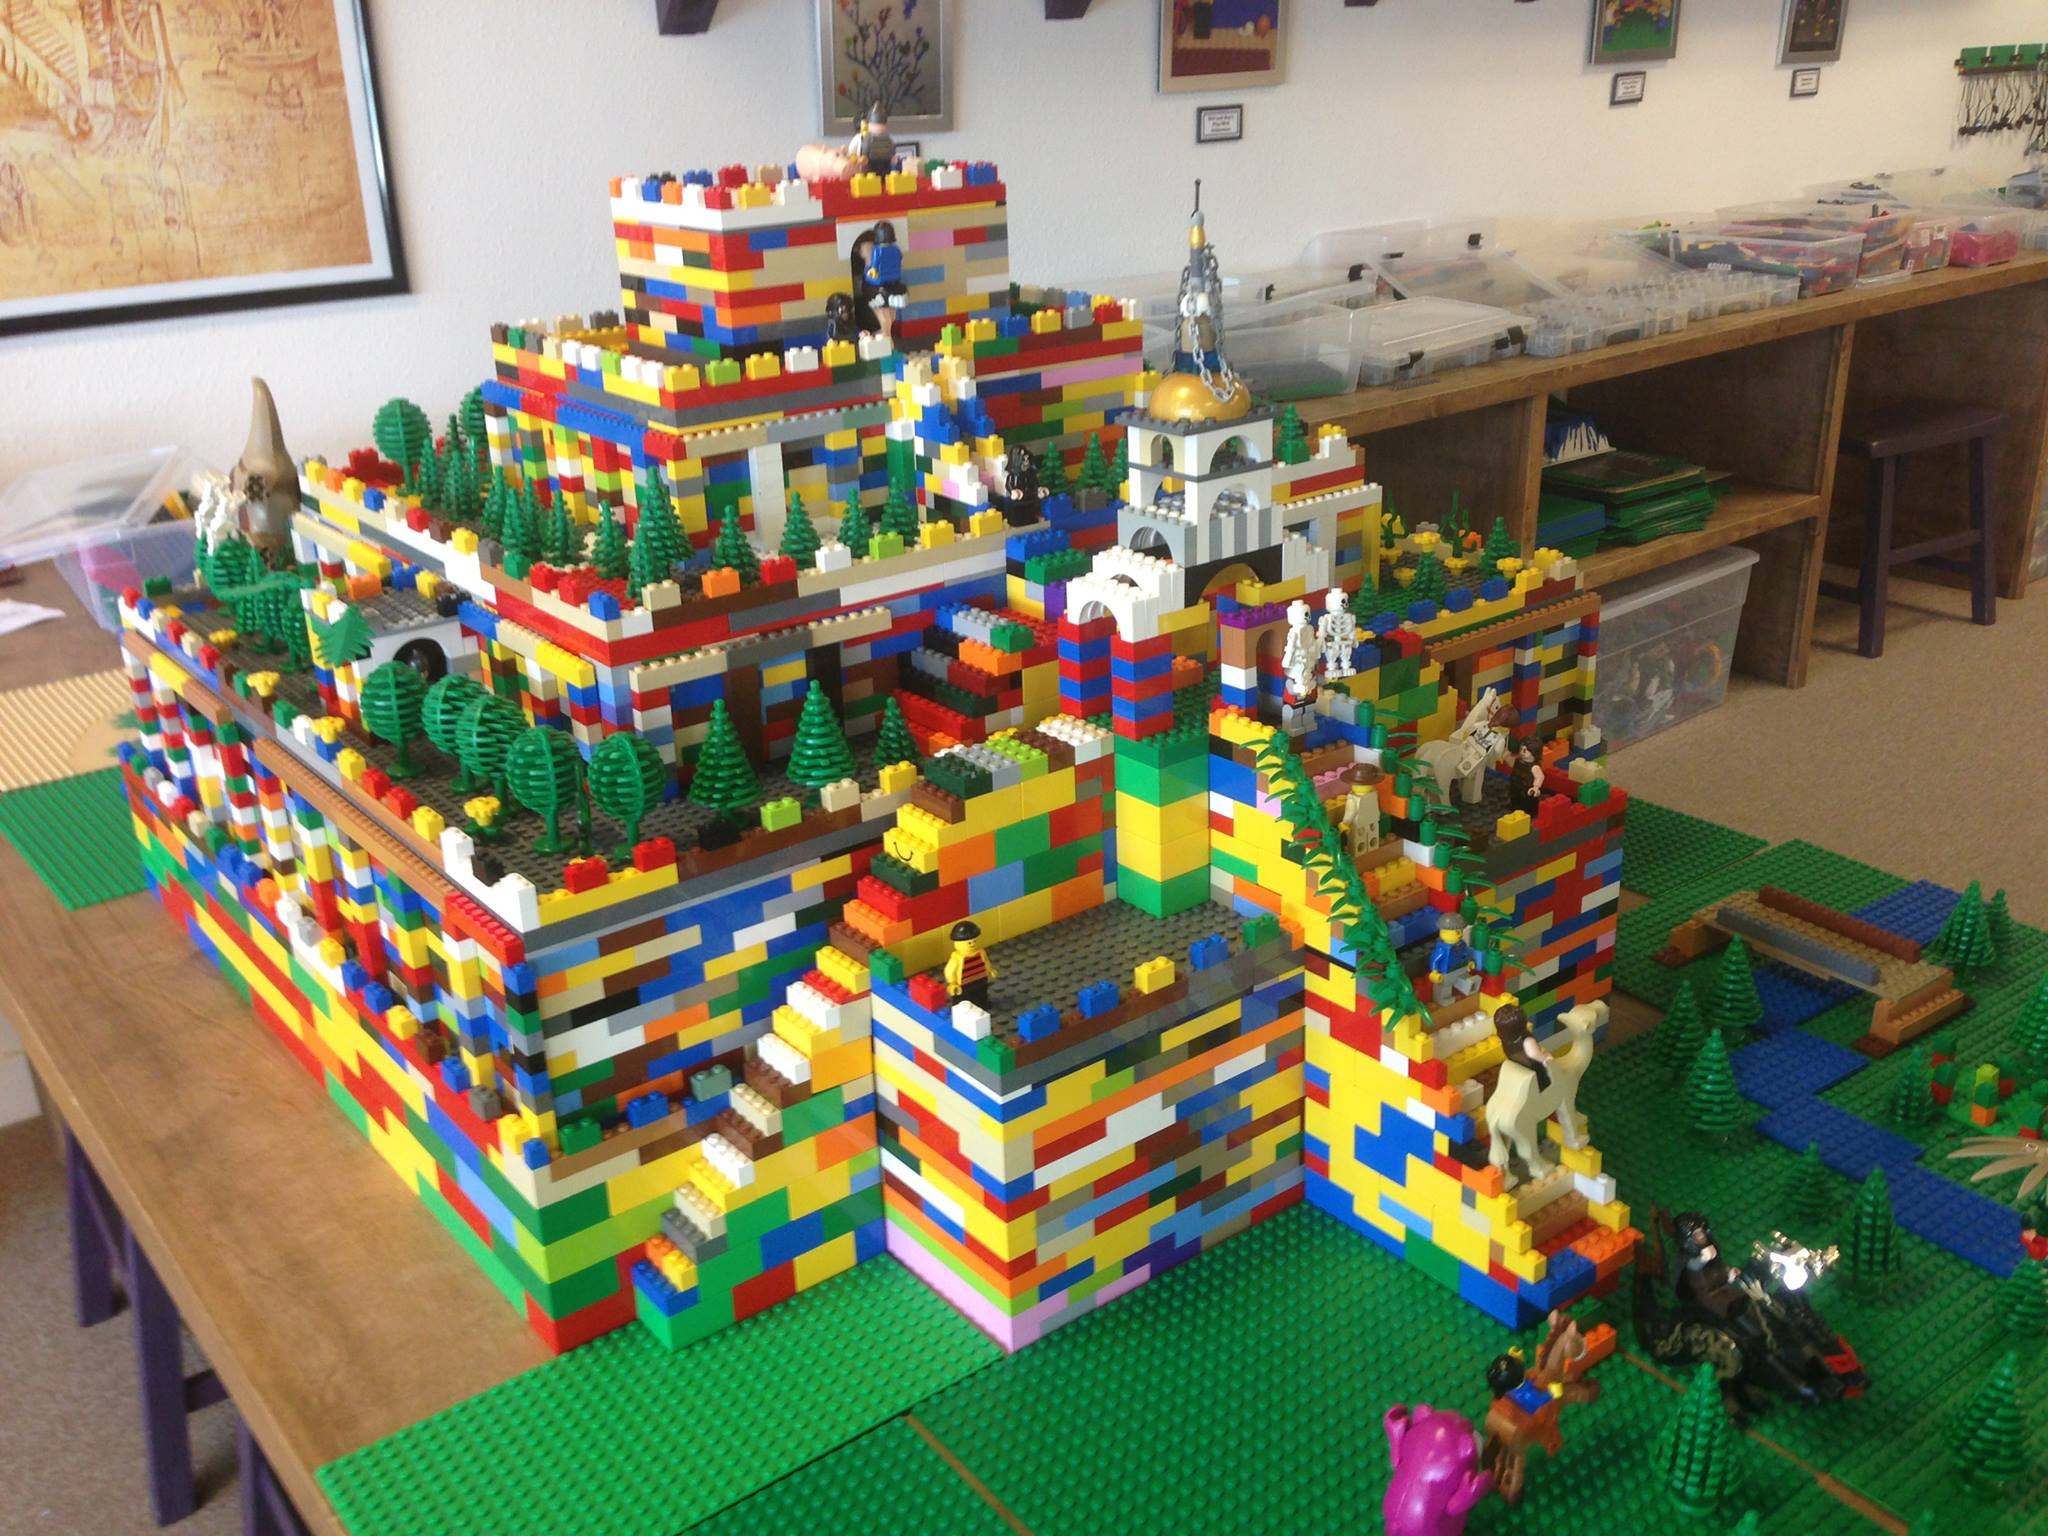 It Takes A Full Team Of Our Young Architects And Engineers To Create Sumerian Ziggurat This Size Out LEGO The Students Studied For